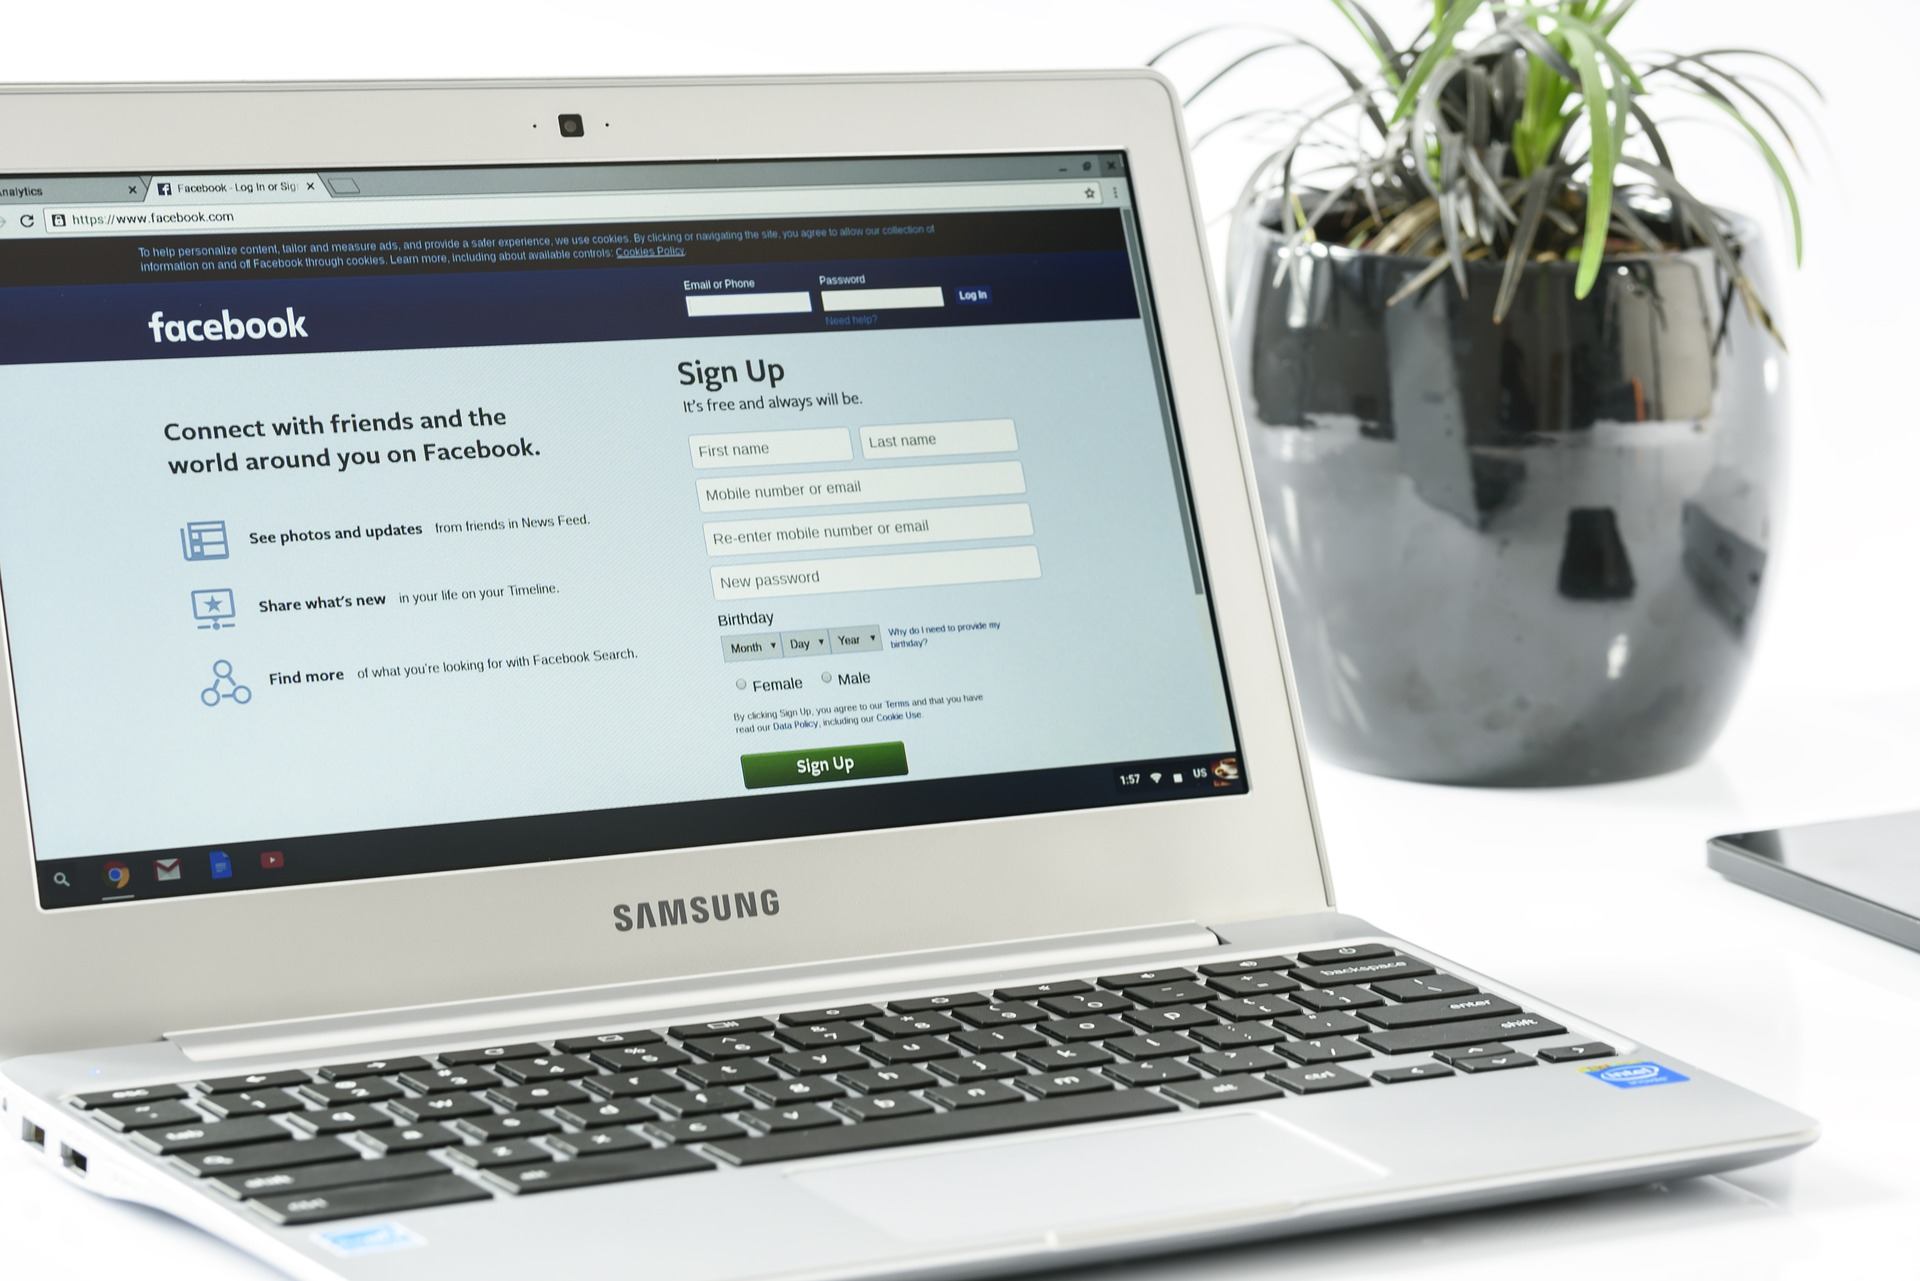 Facebook Management: Tips on Optimizing Your Facebook Page